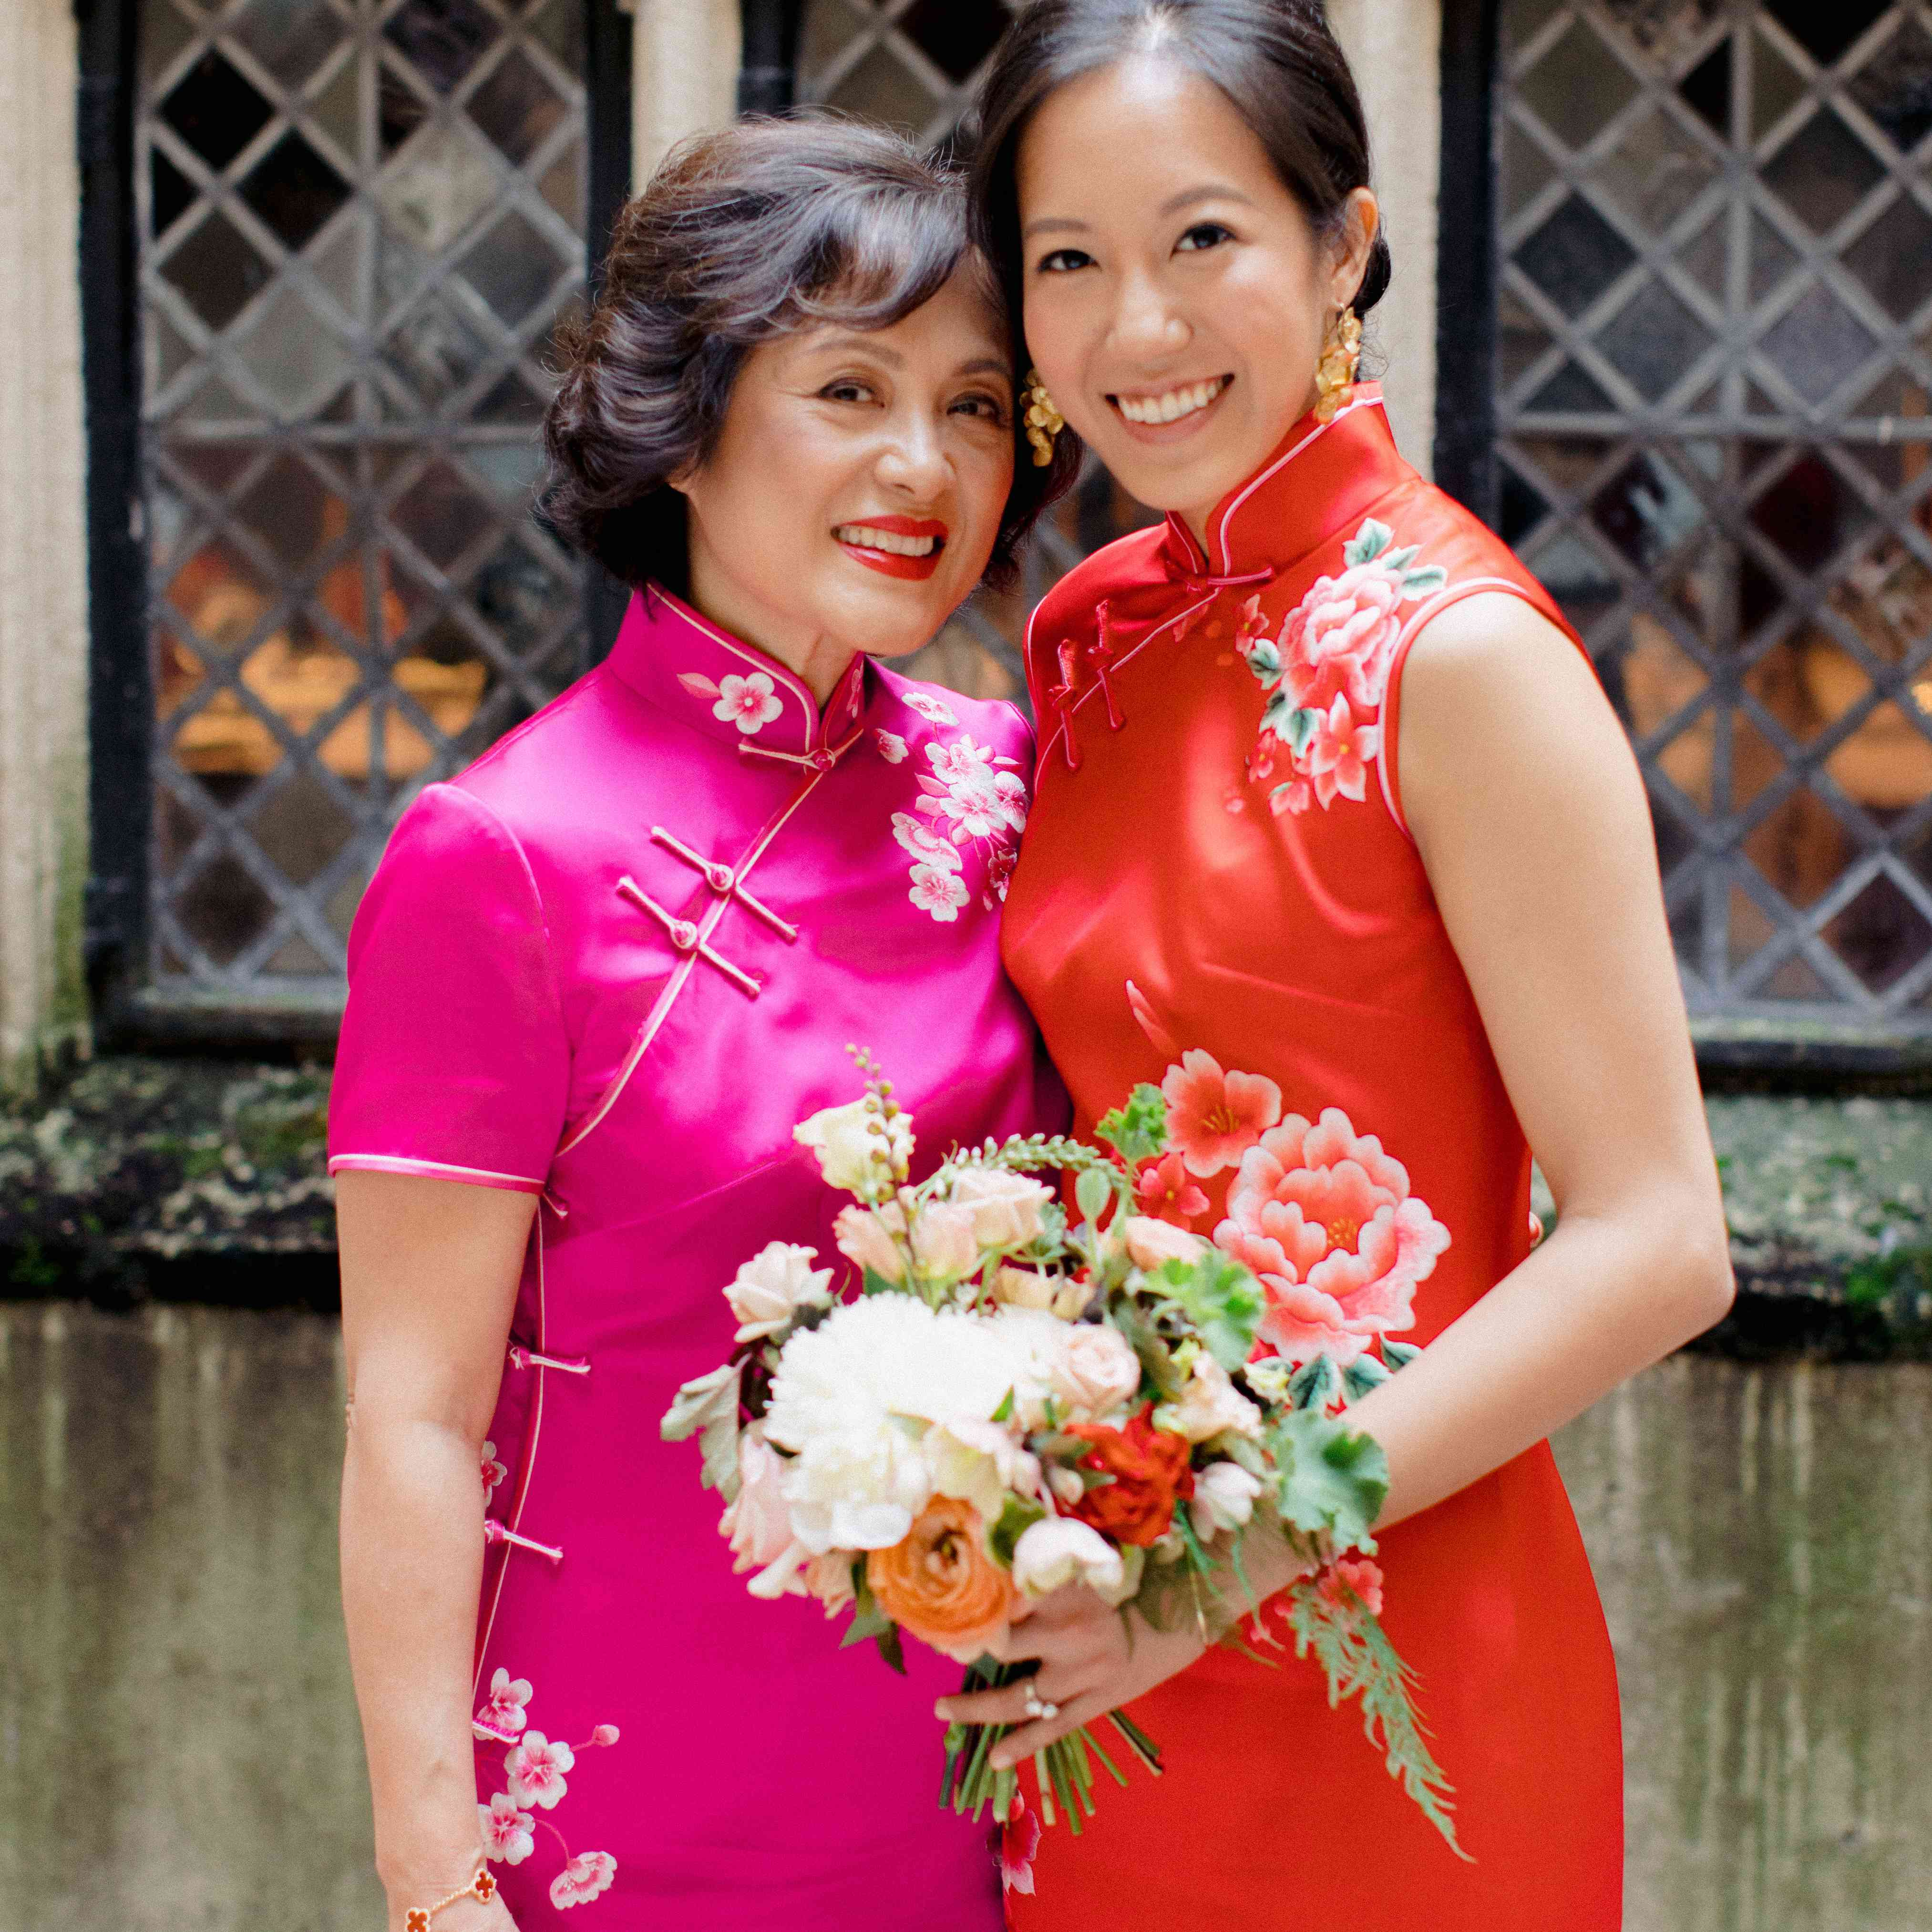 The bride and her mother